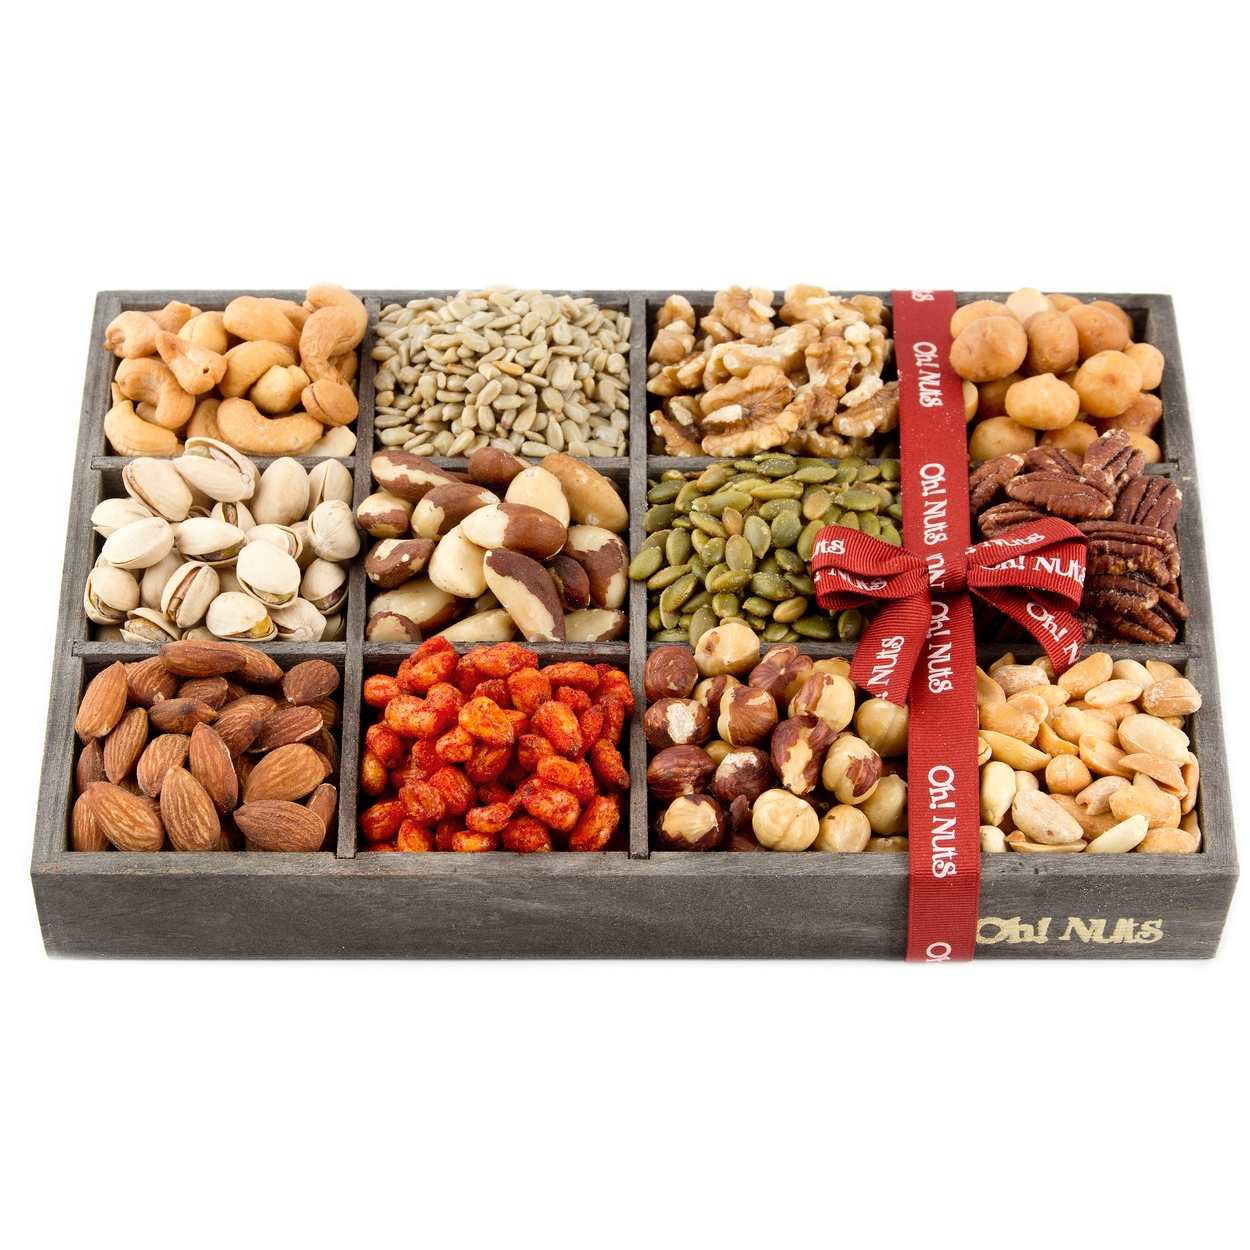 Holiday gift baskets mixed nuts gift baskets and seeds valentines holiday gift baskets mixed nuts gift baskets and seeds valentines or mothers day gift tray 12 variety gift baskets freshly roasted snack healthy gift box negle Images